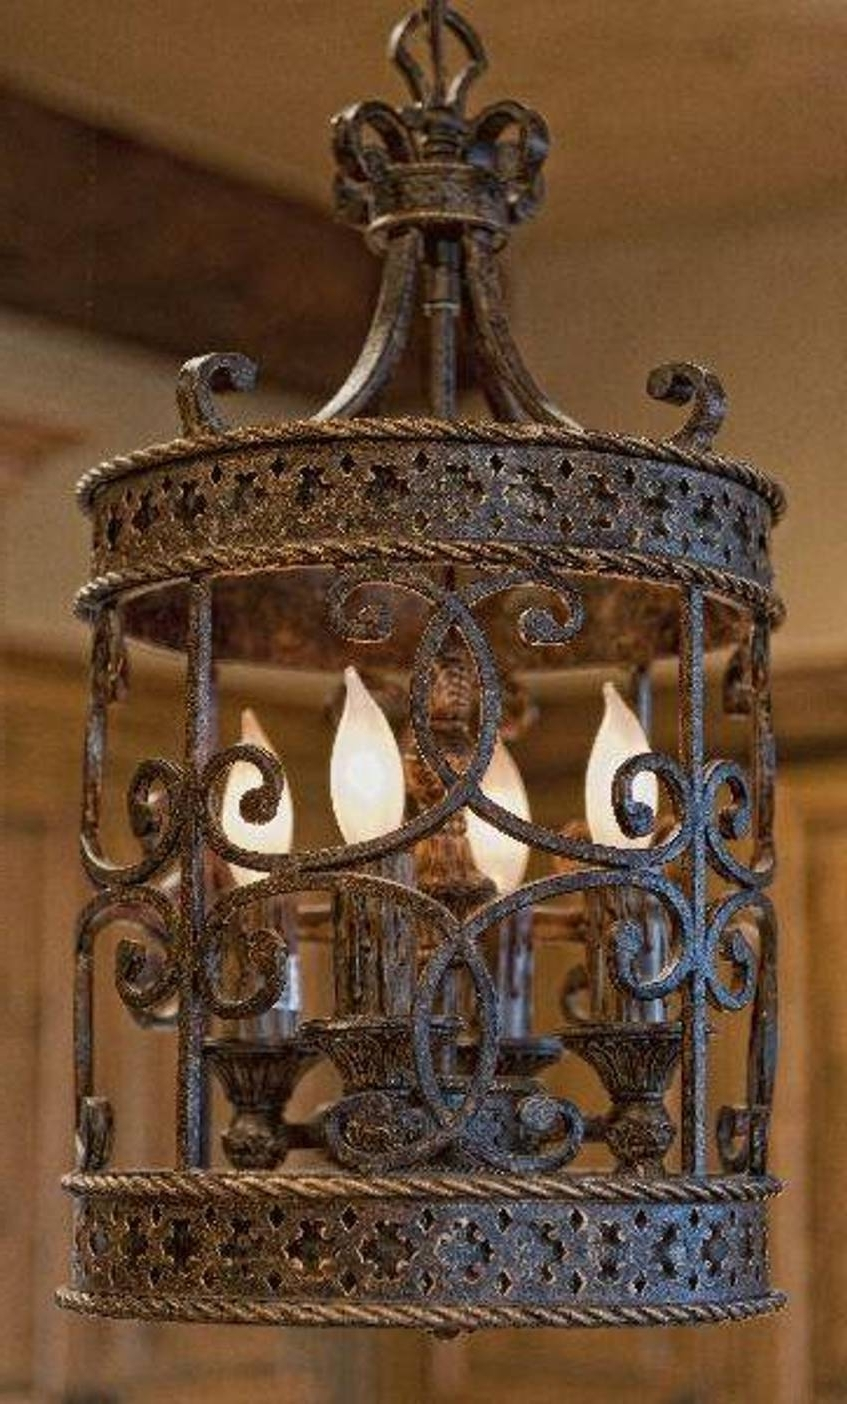 Chandelier: Astonishing Cast Iron Chandelier Large Wrought Iron Within Most Recently Released Large Iron Chandeliers (View 5 of 20)